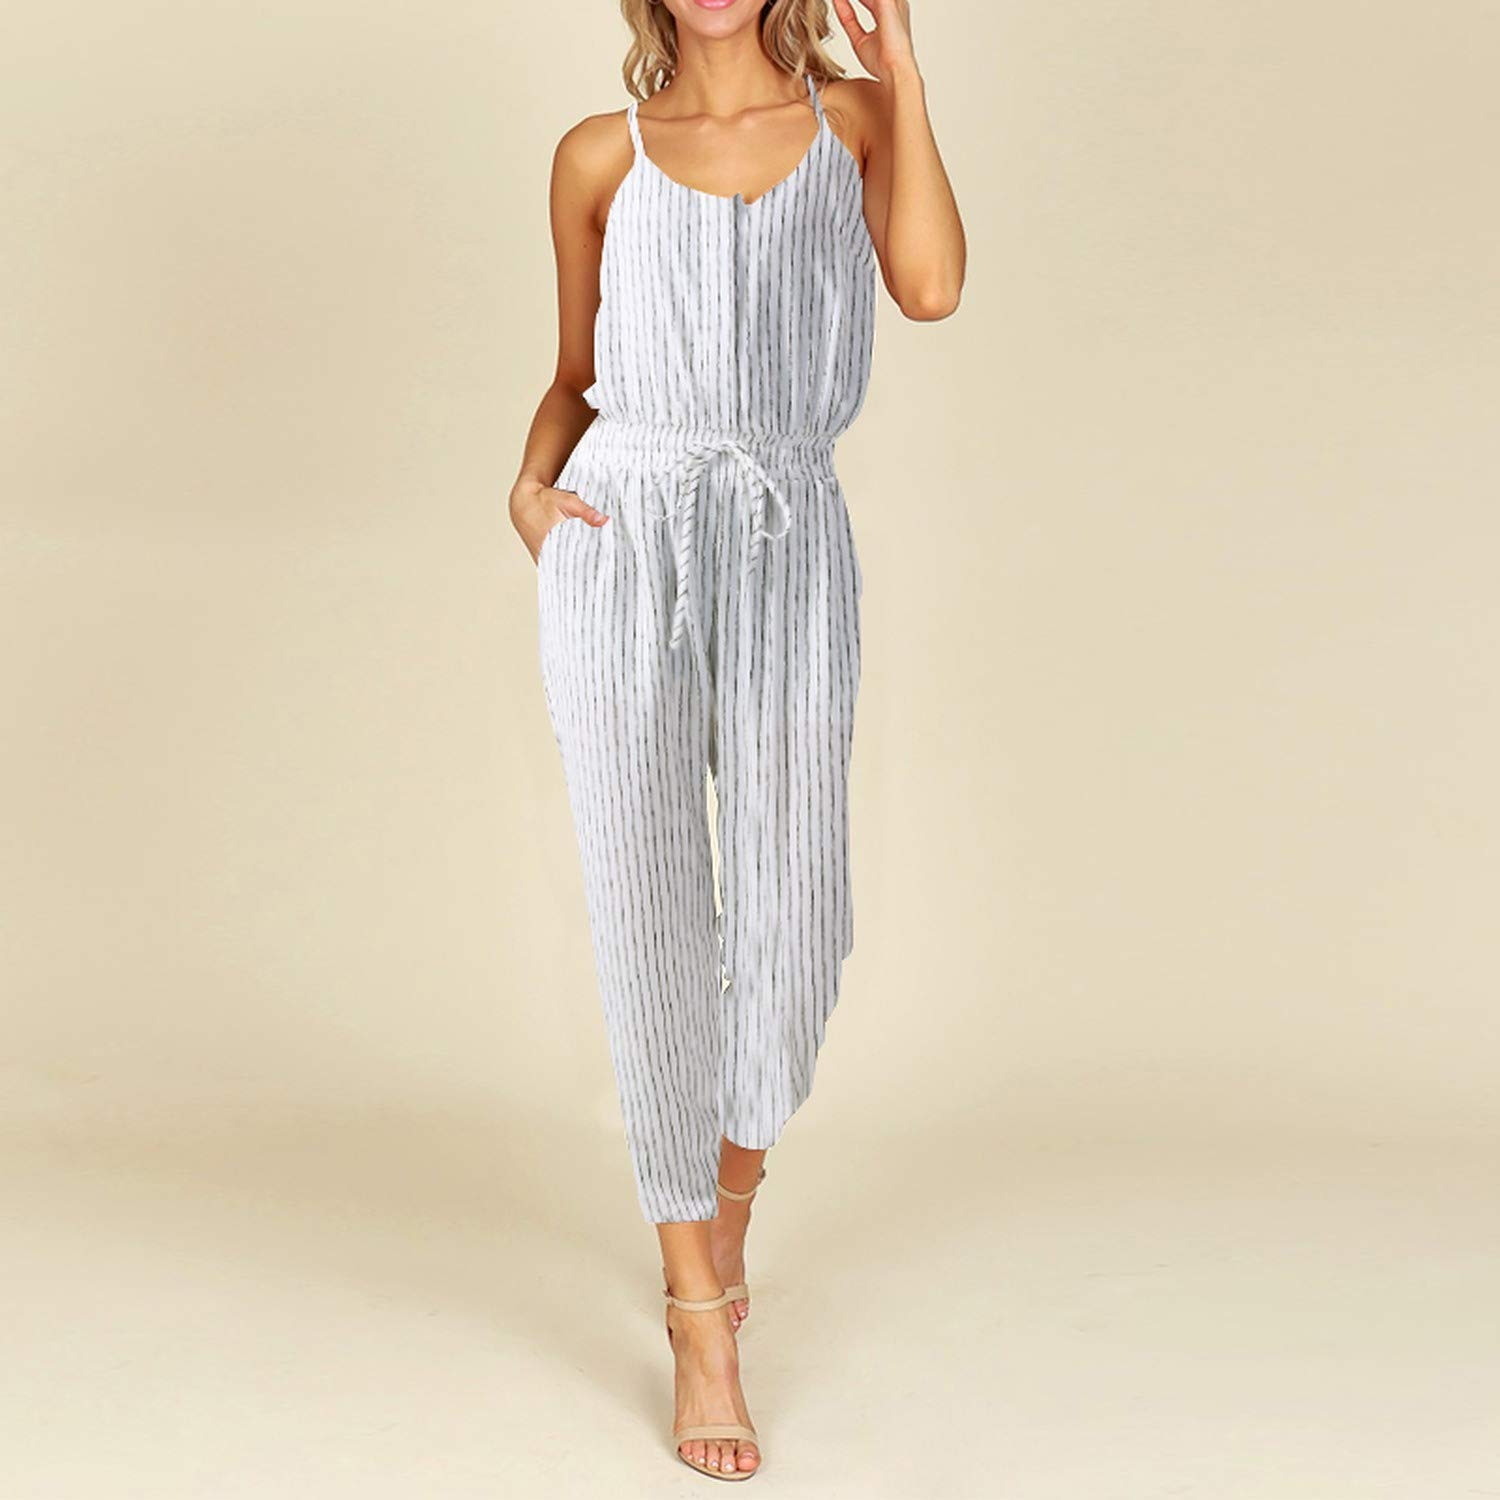 Summer S Women Striped Jumpsuits Casual Sleeveless Elastic Waist Strappy Bodysuits V K Long Playsuits-5Xl